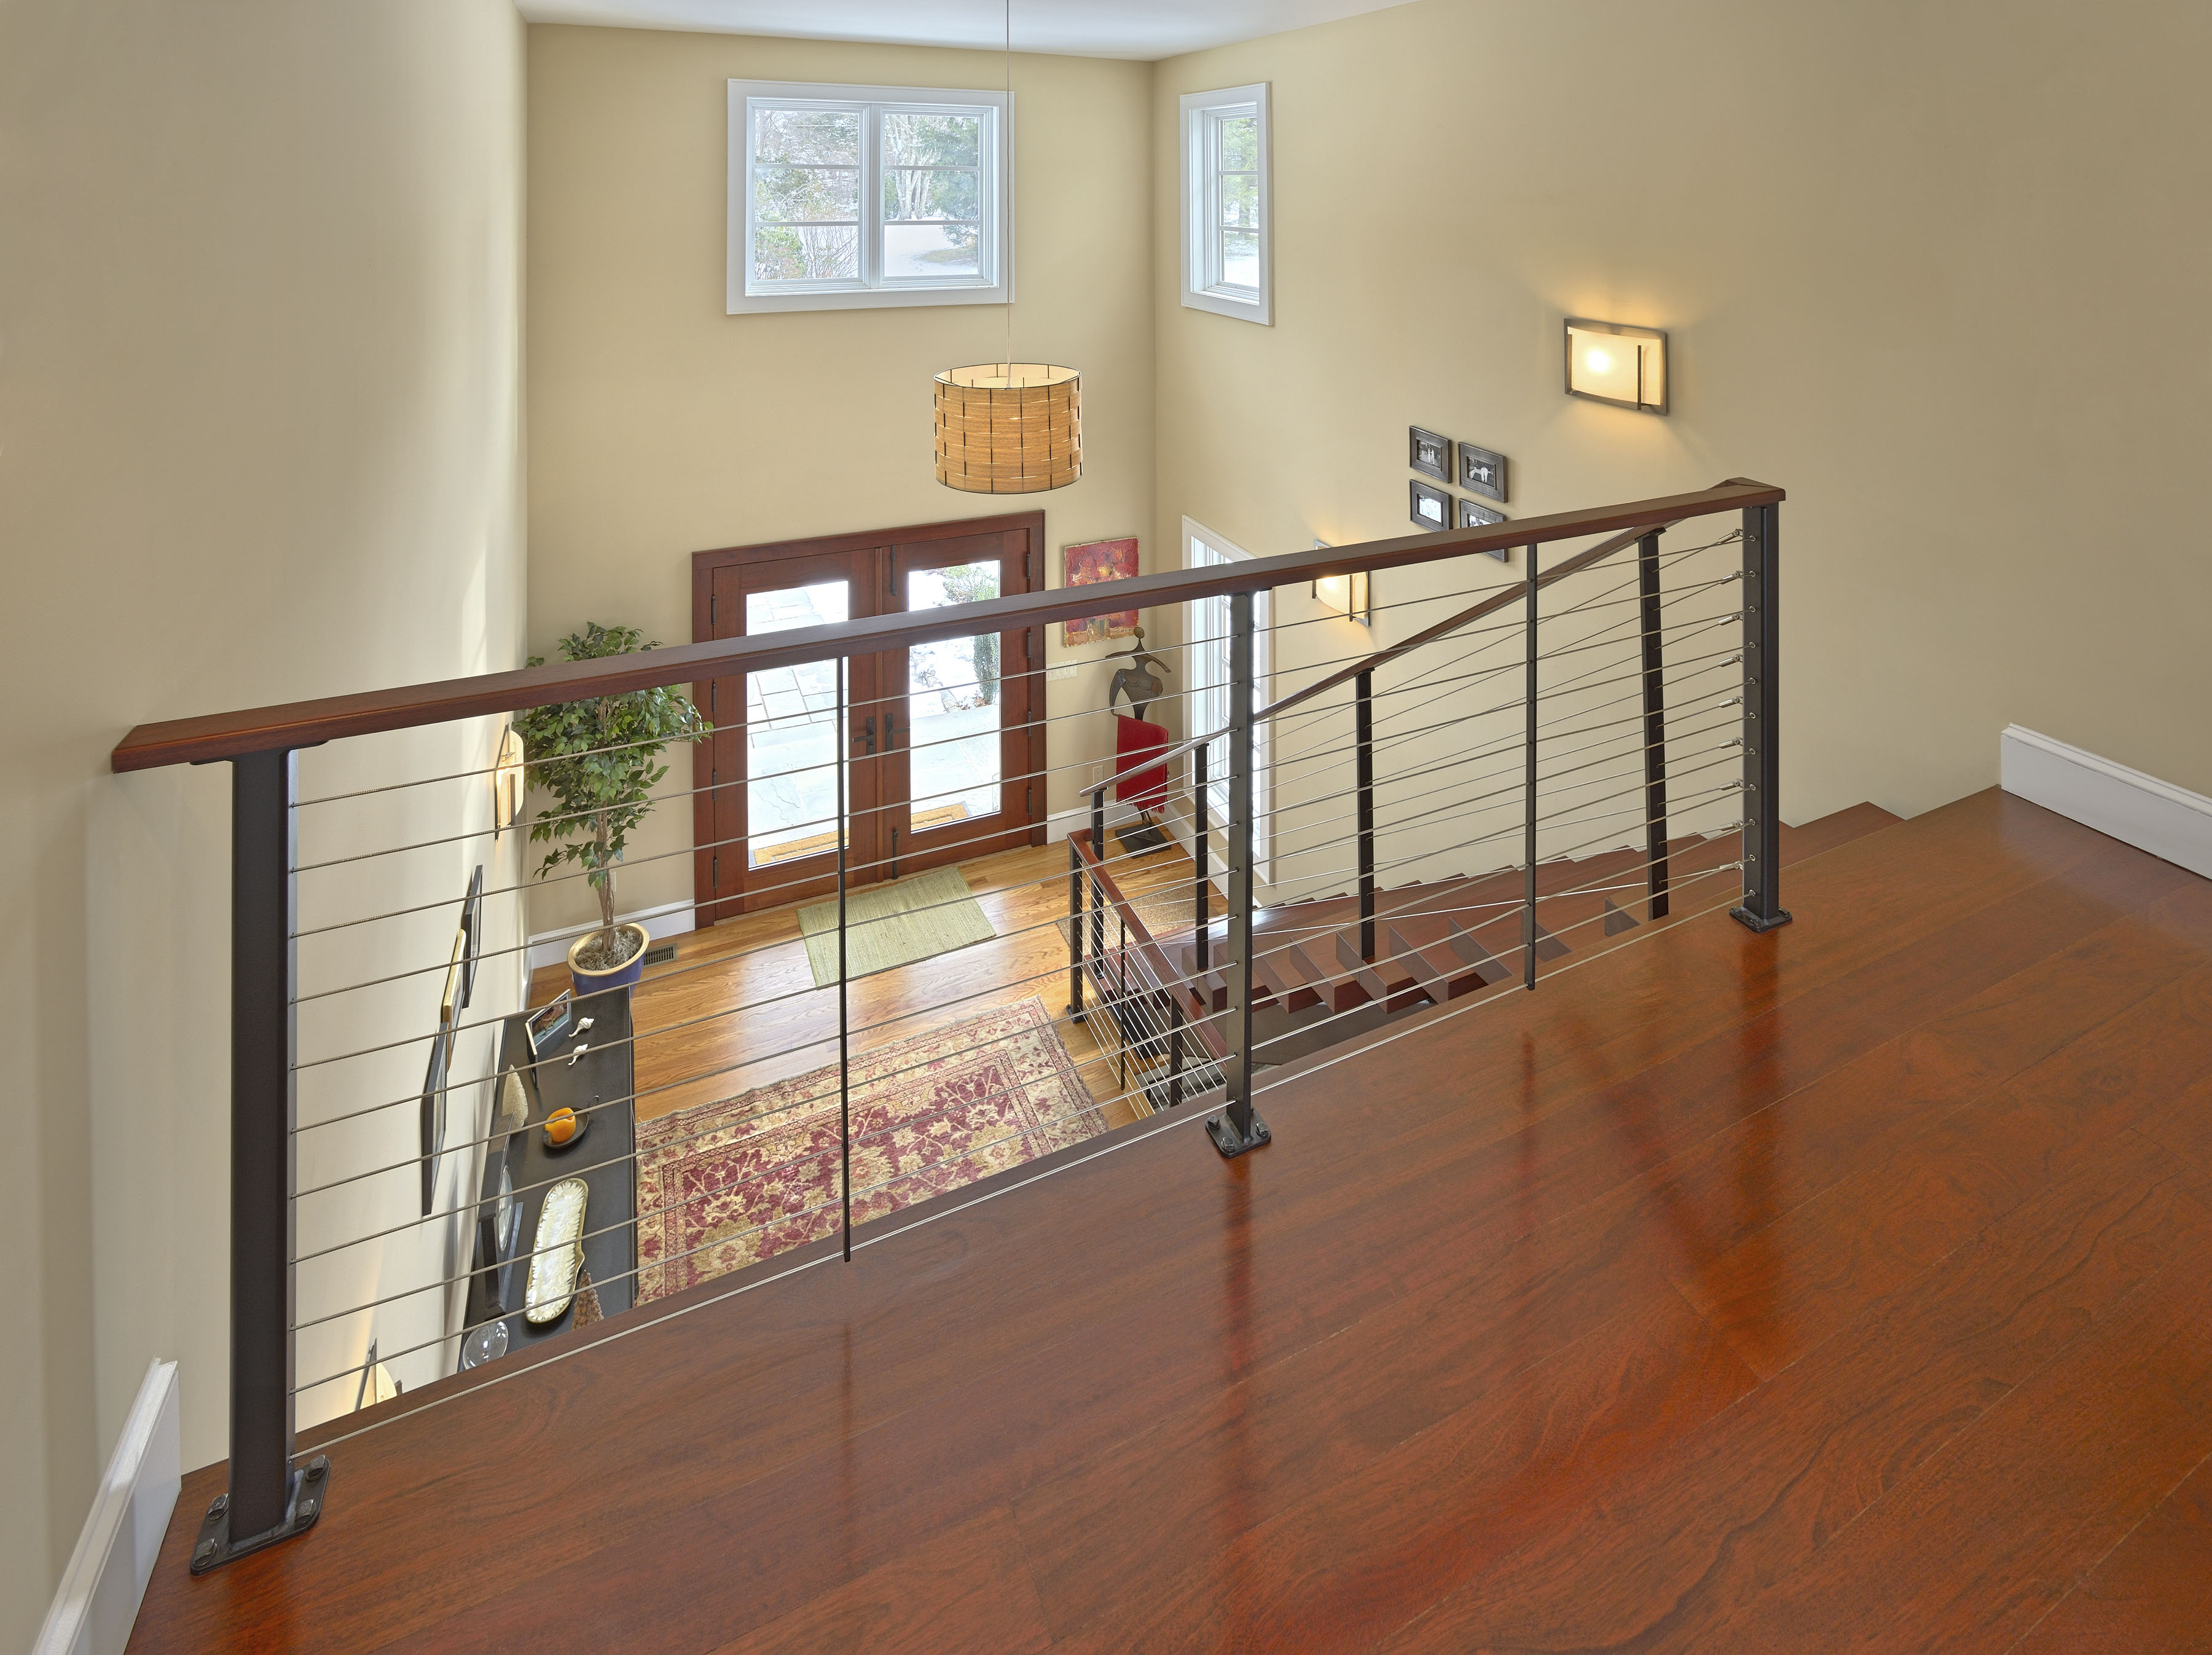 Balcony overlooking entry through cable railing